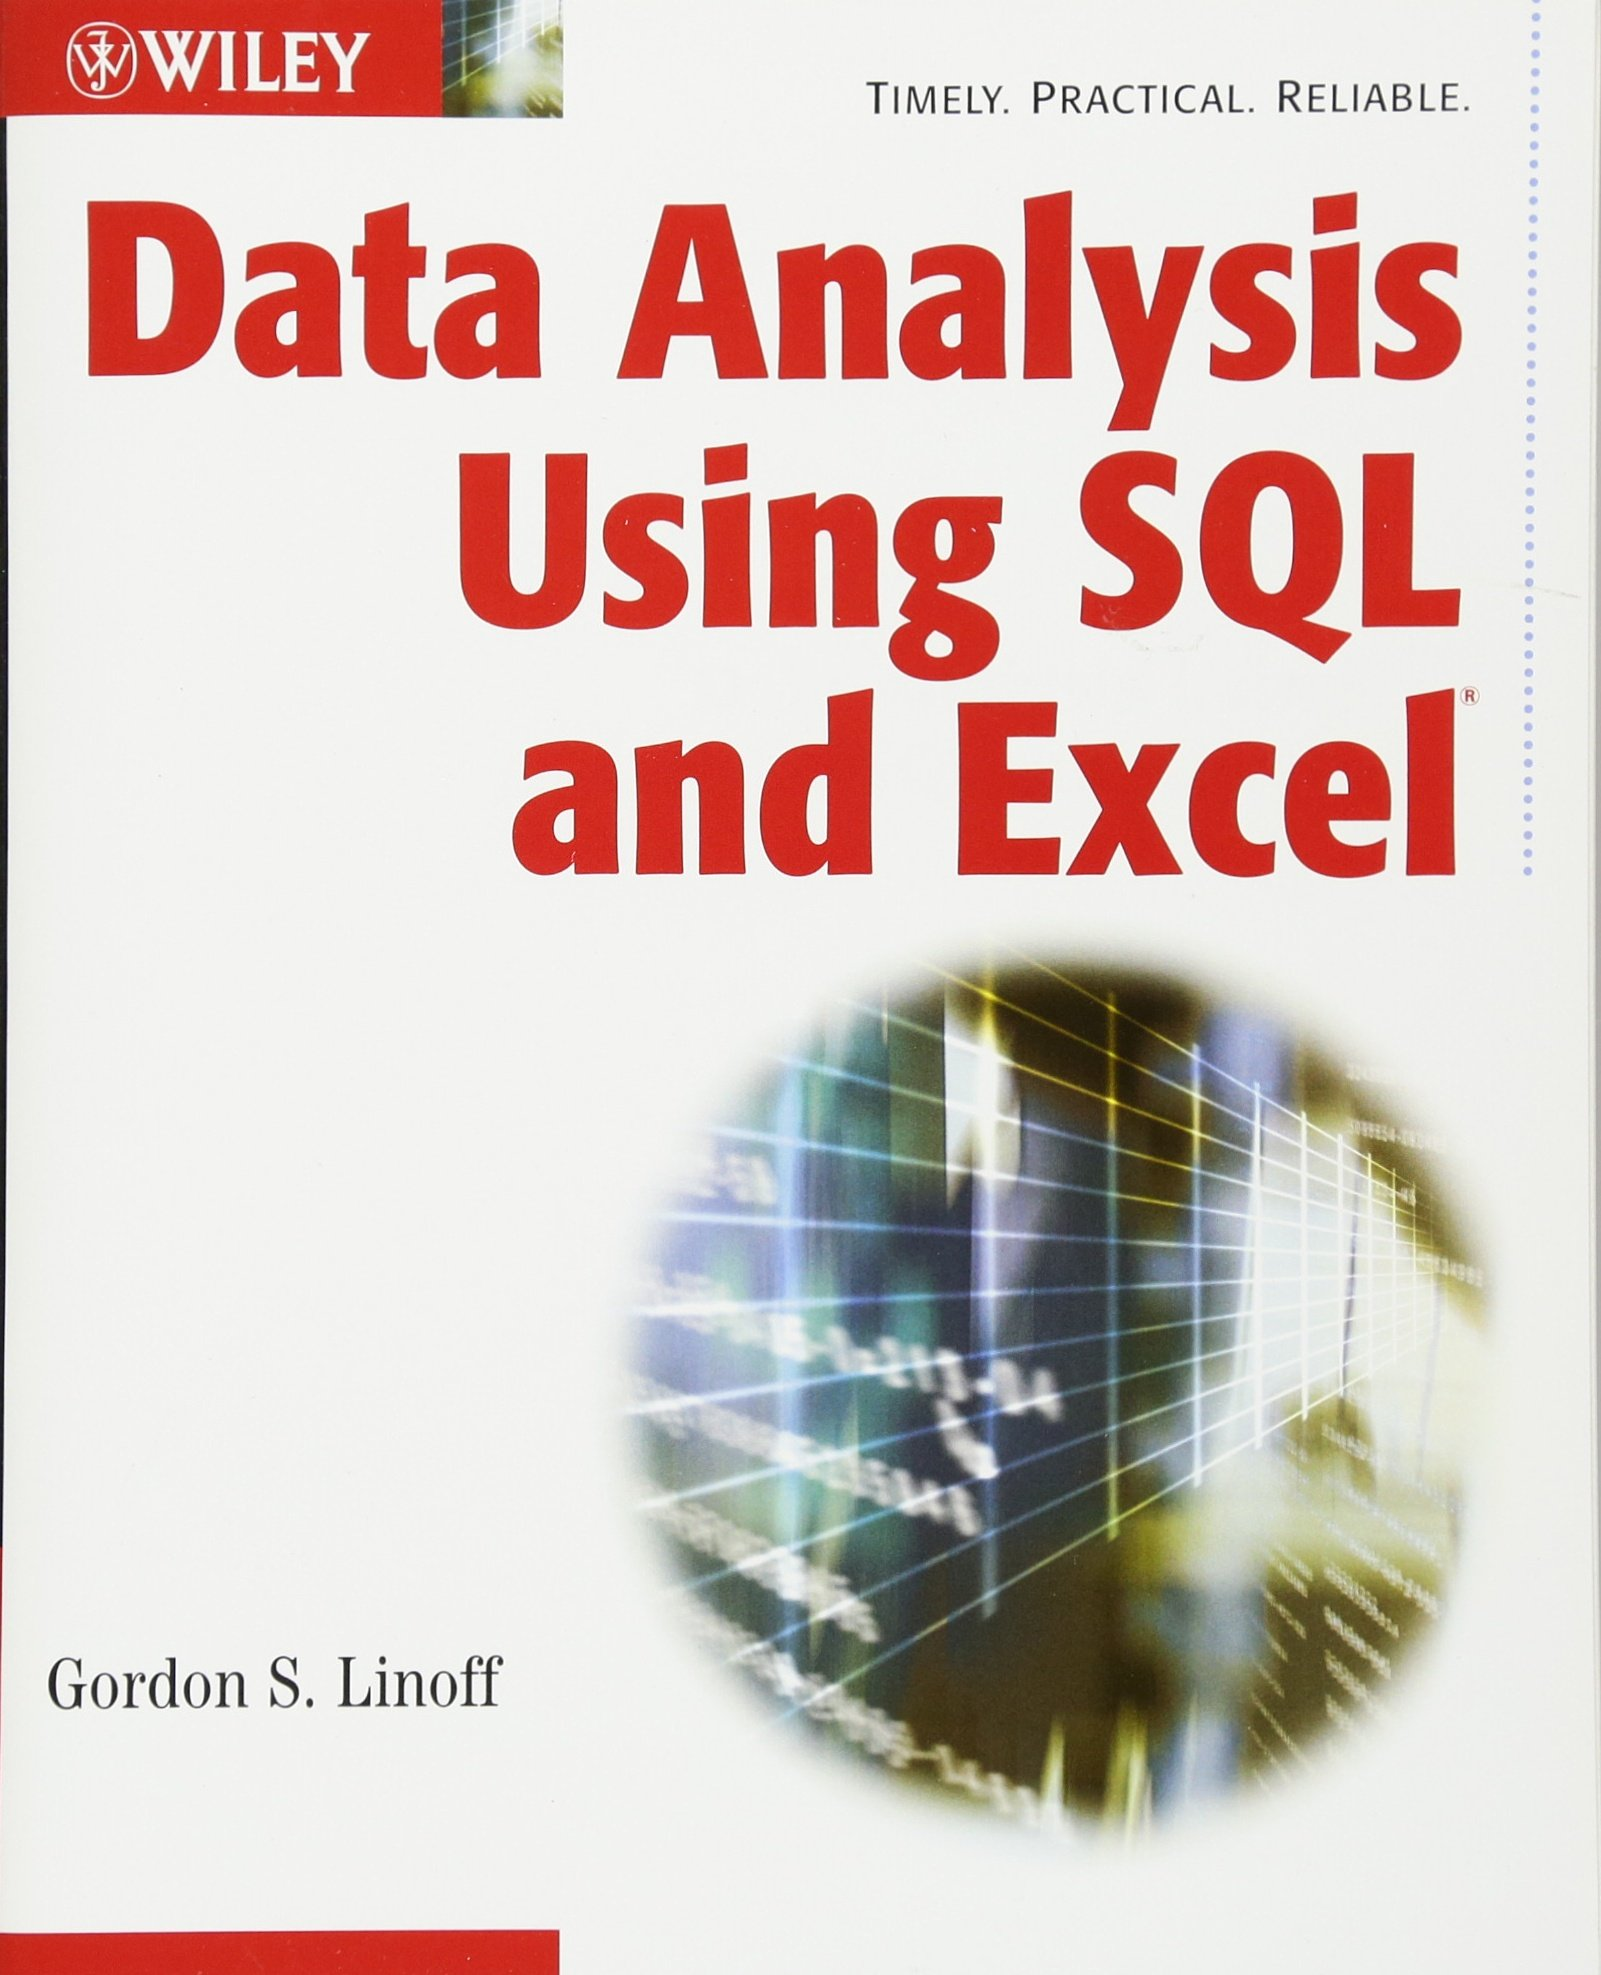 Data Analysis Using SQL and Excel by Wiley